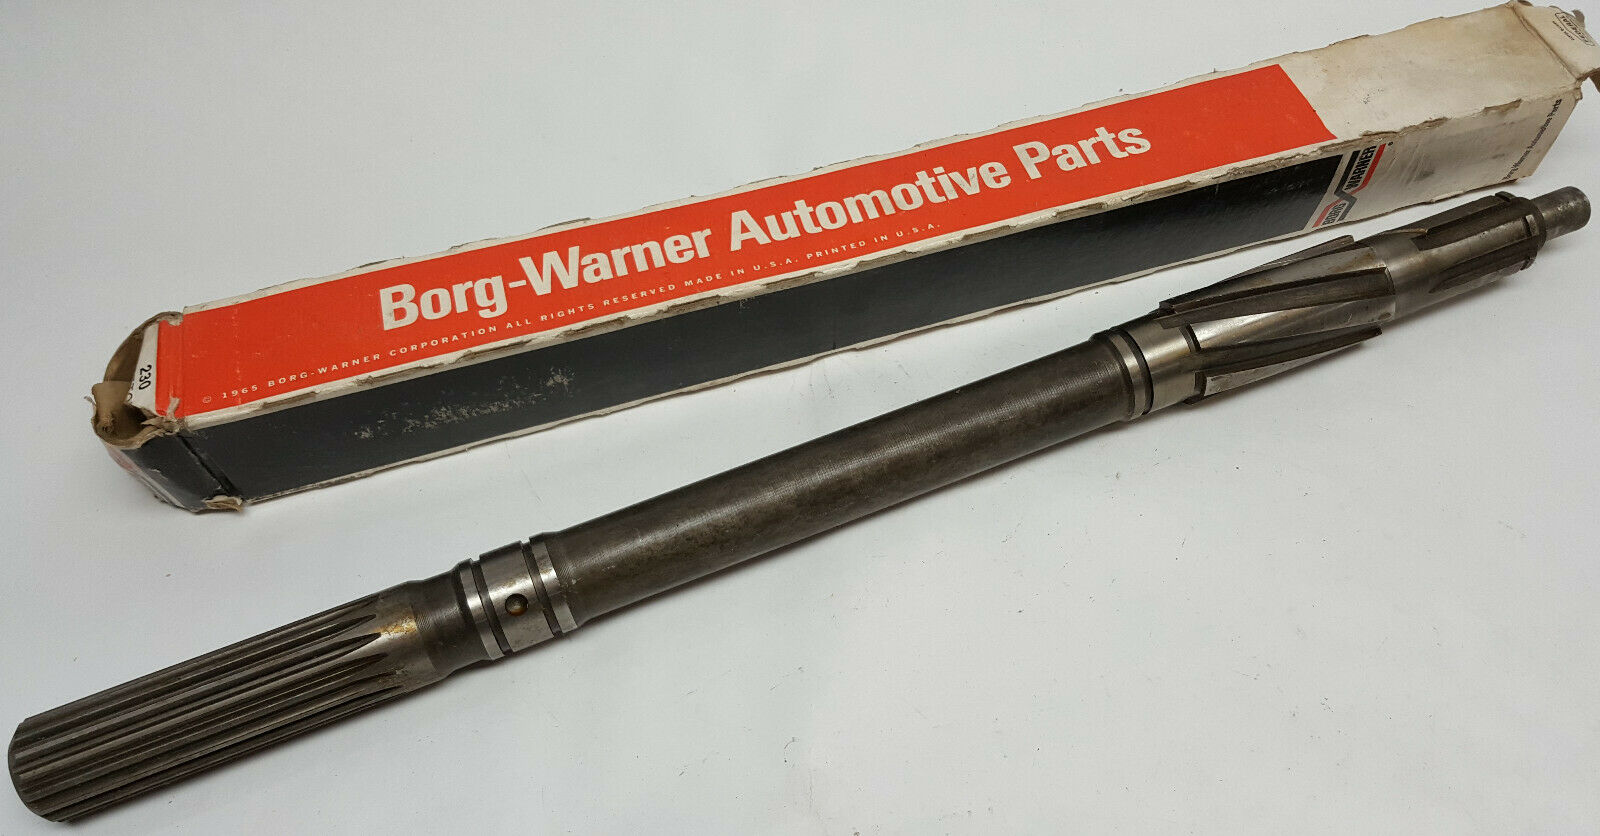 NOS Delco/ GM/ Borg Warner 3 speed transmission parts main shaft old inventory Cool Part Our Part #49292